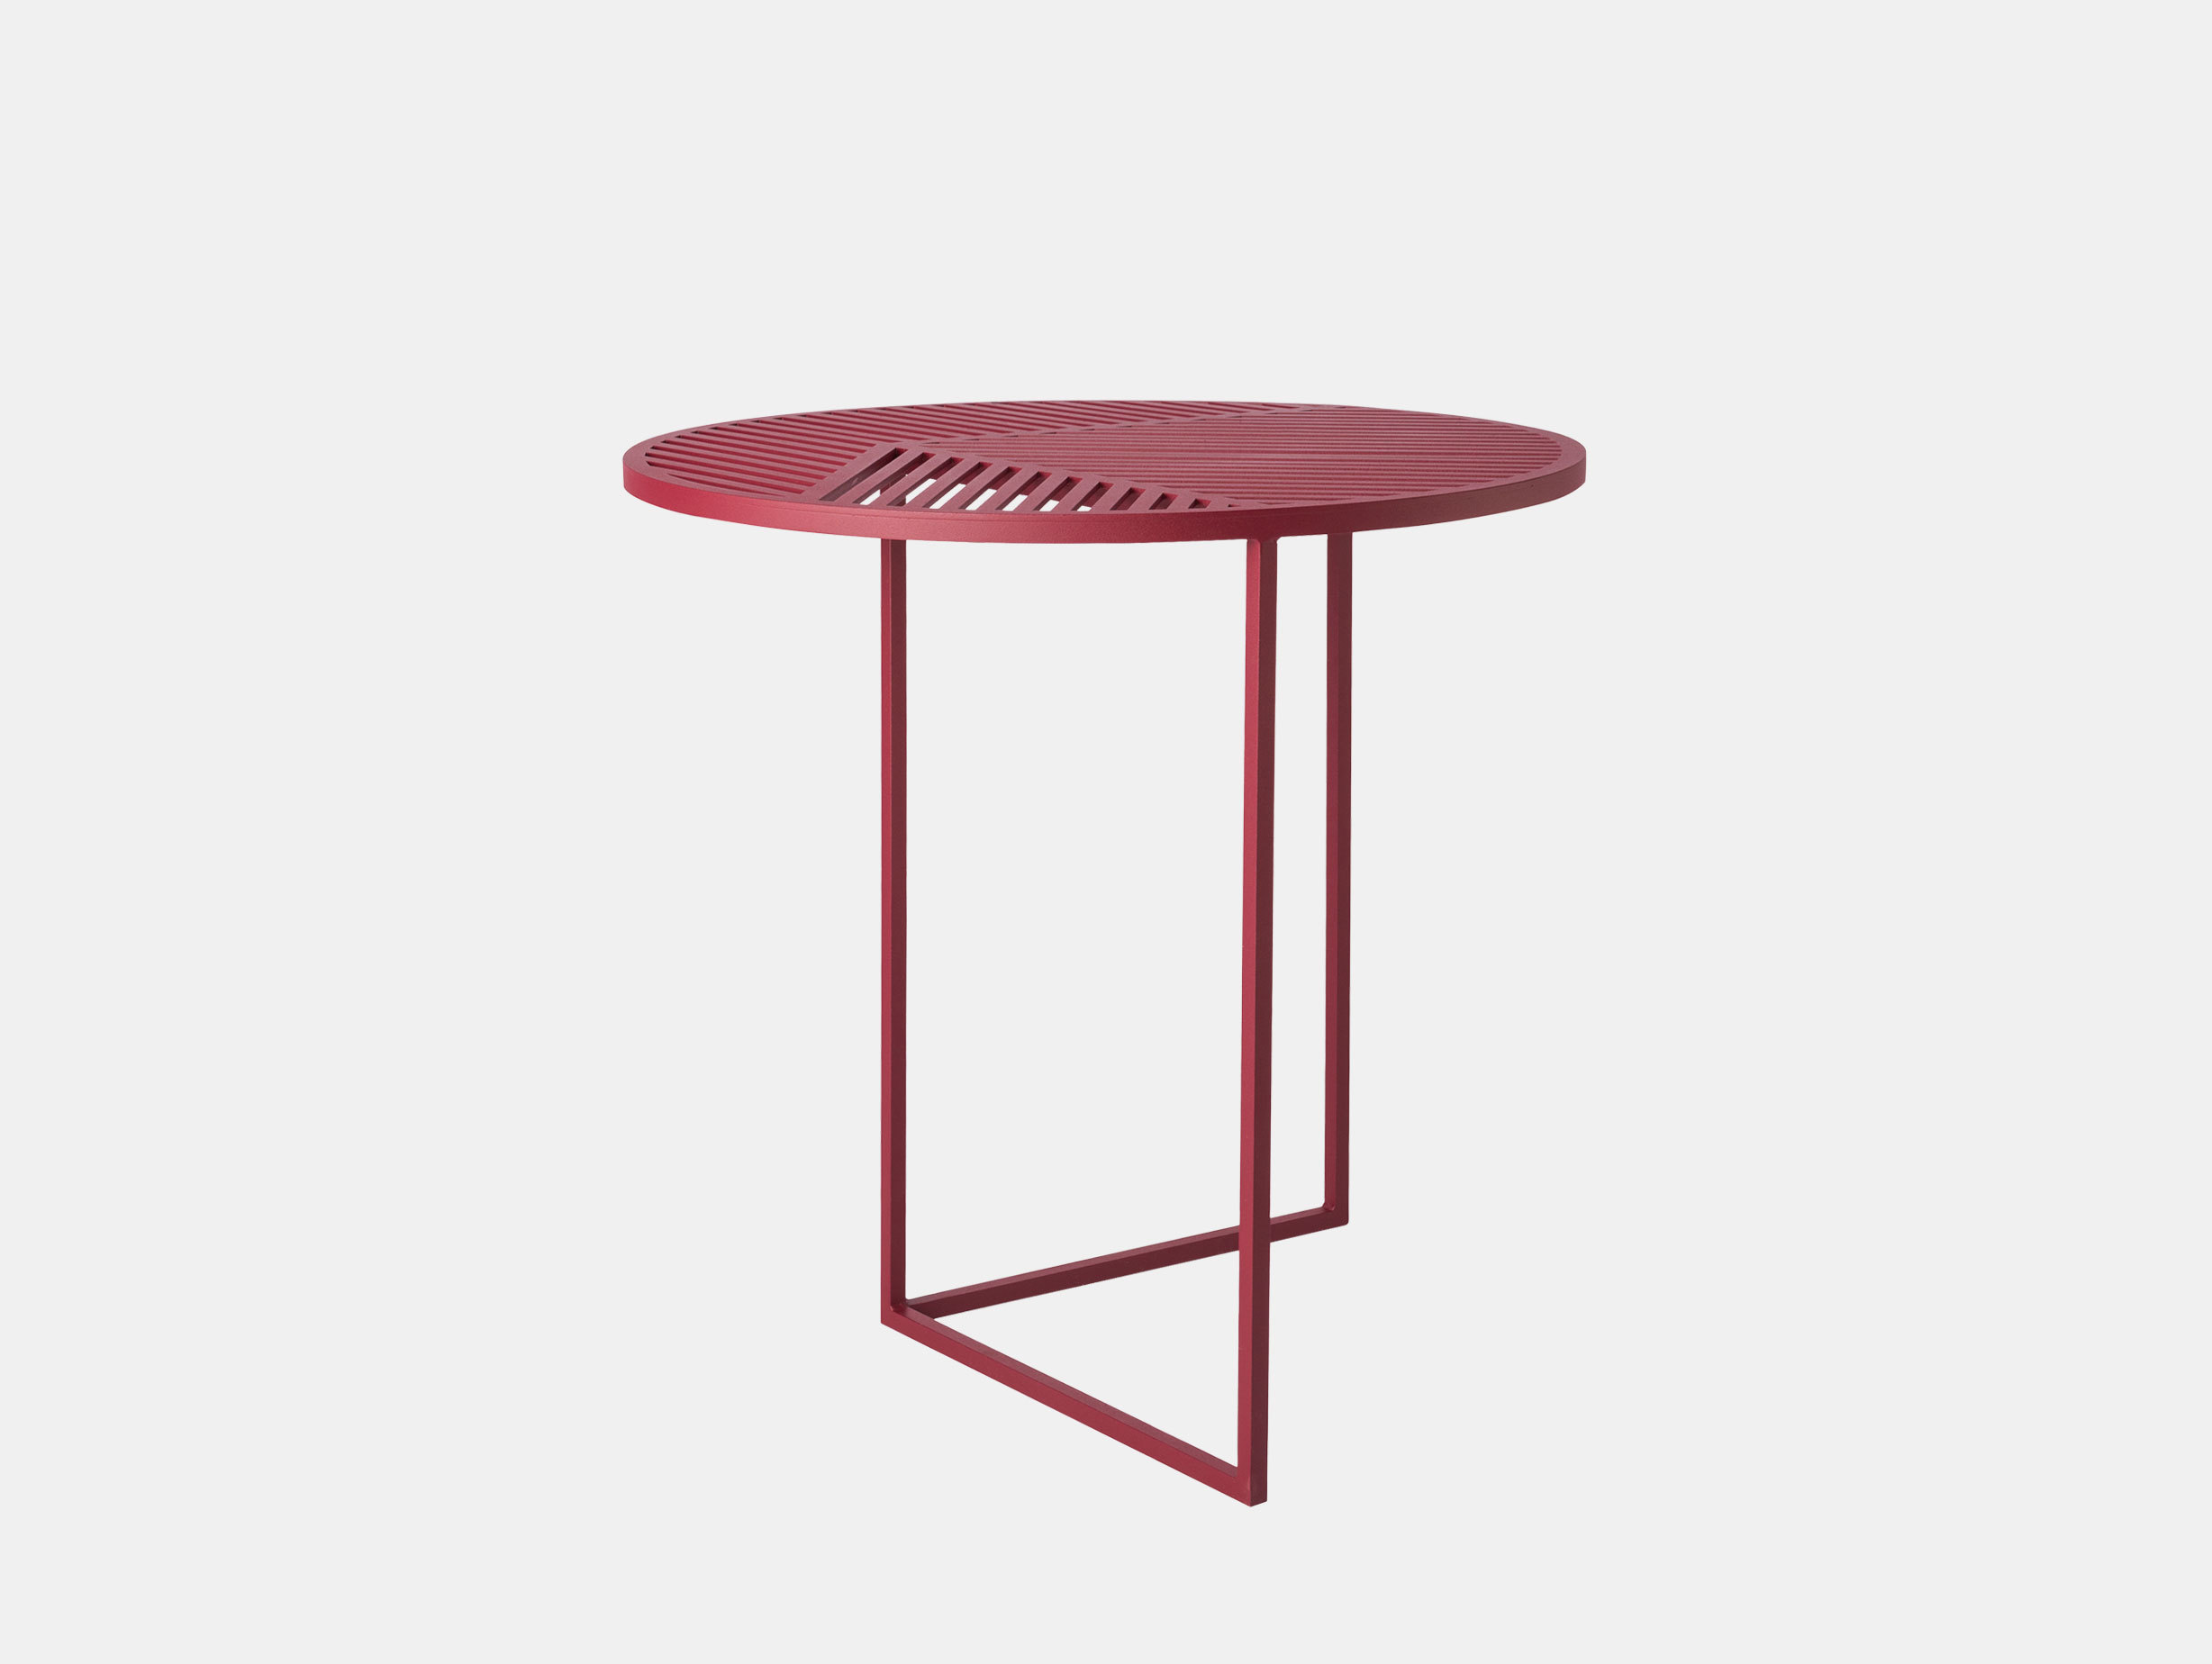 Petite Friture Iso Side Table Round Red Pool